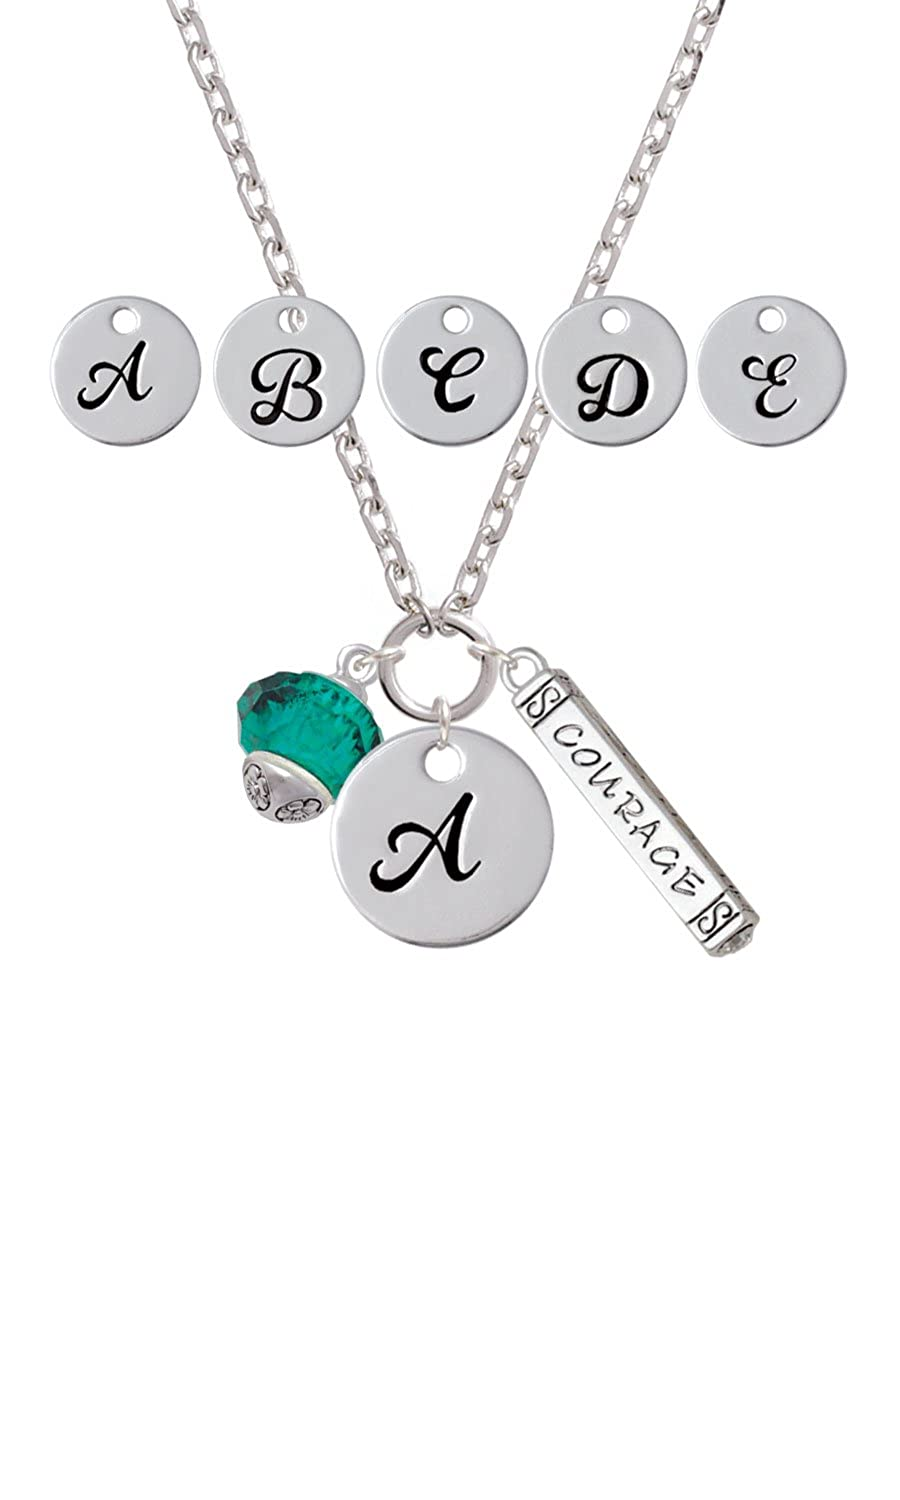 Teal Faceted Glass Spinner Custom Initial Courage Strength Zoe Necklace